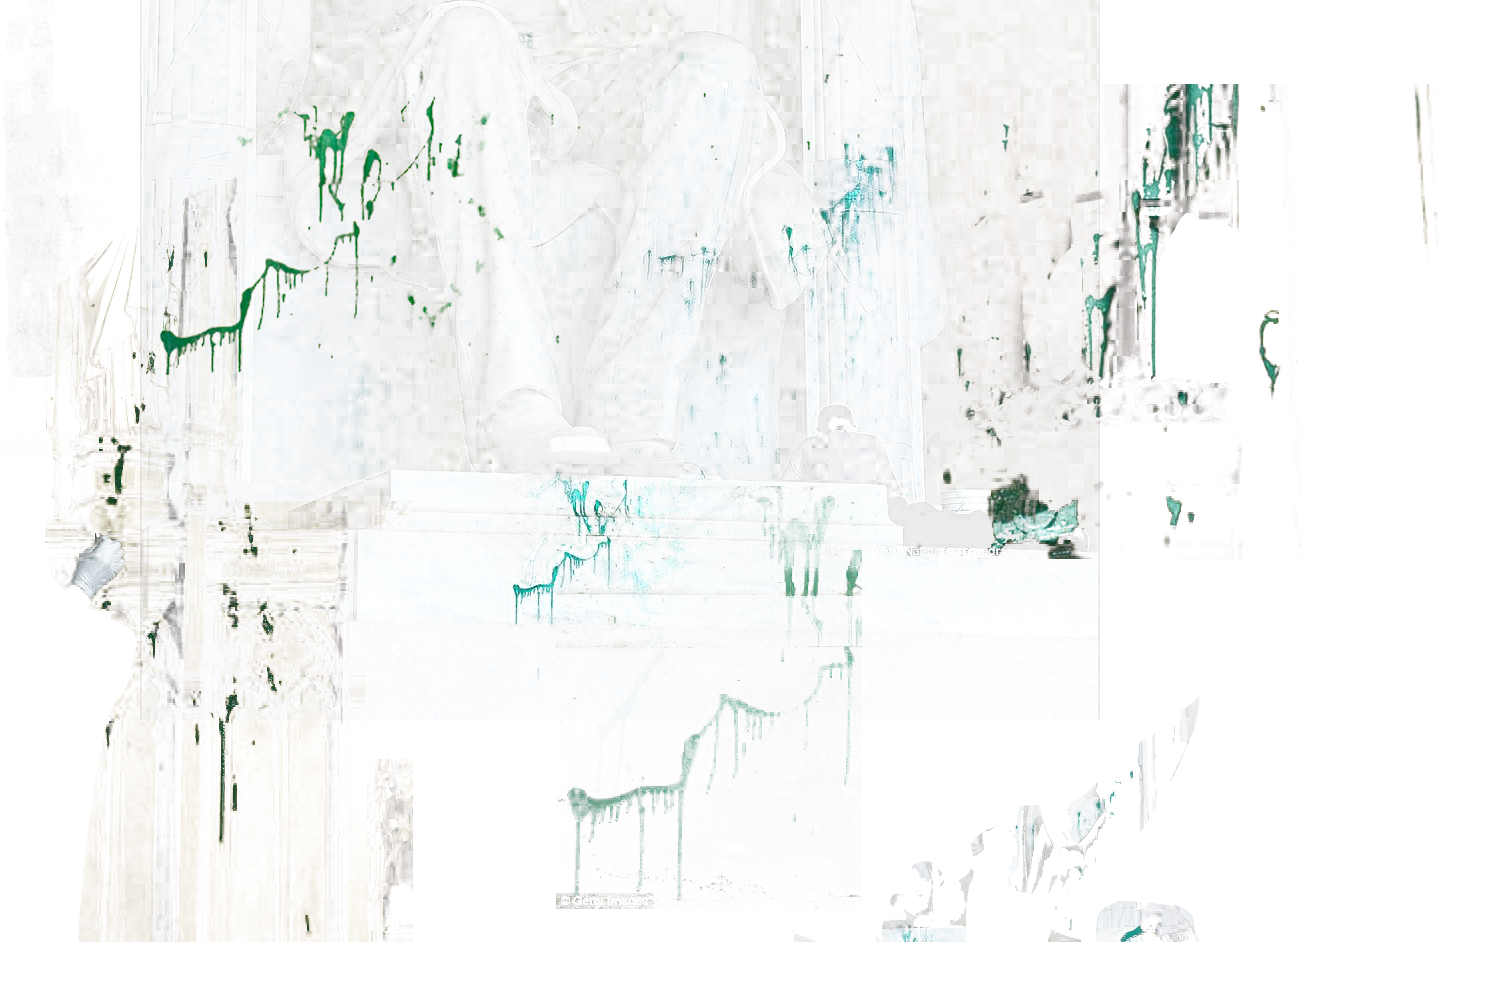 GREEN PAINT MONUMENTS WASHINGTON